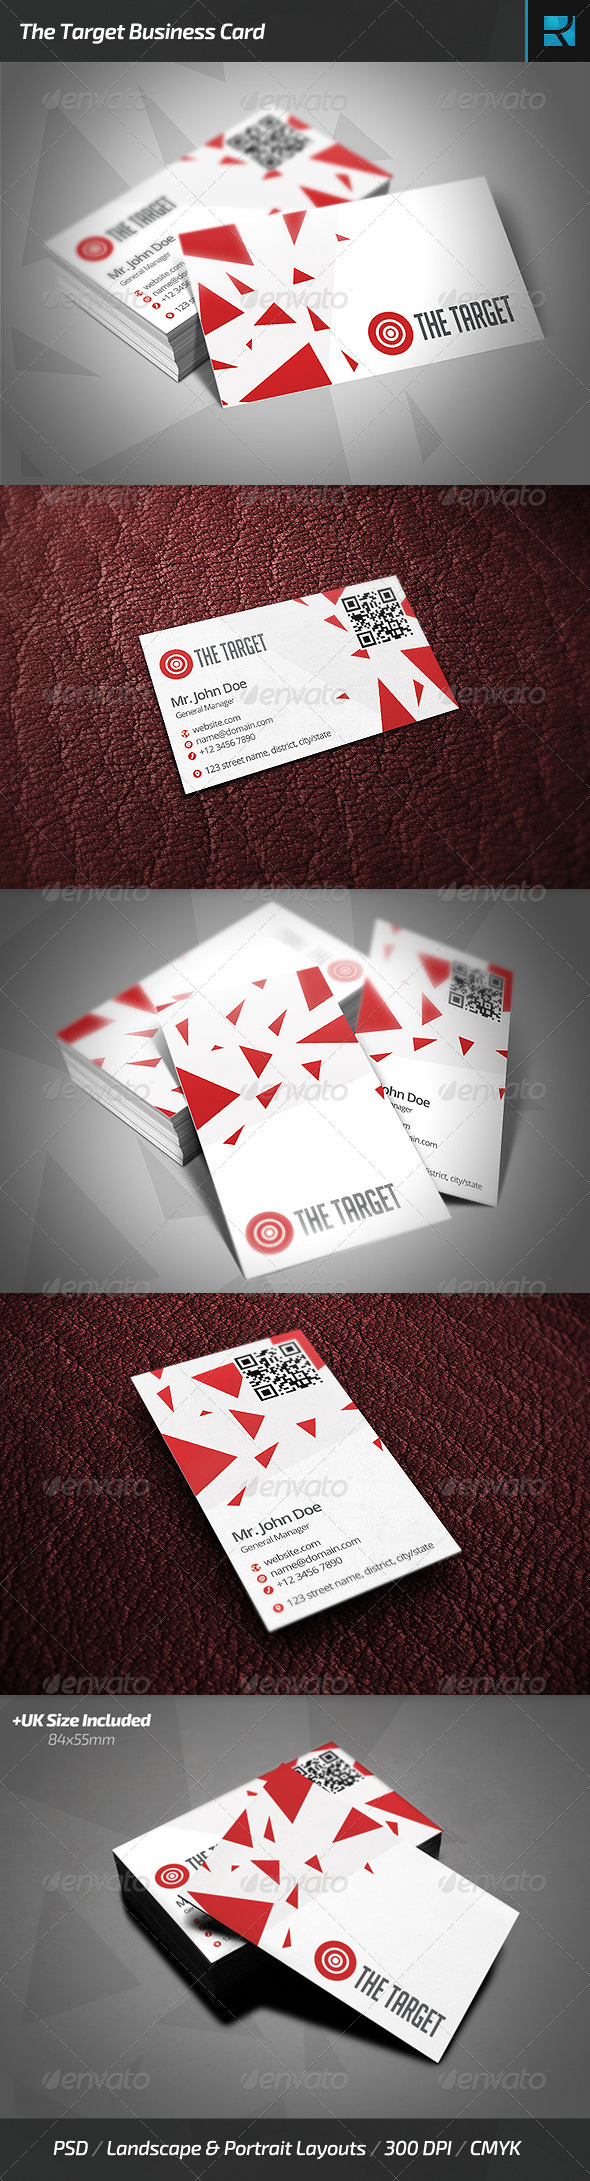 Print templates the target business card graphicriver for Target business cards